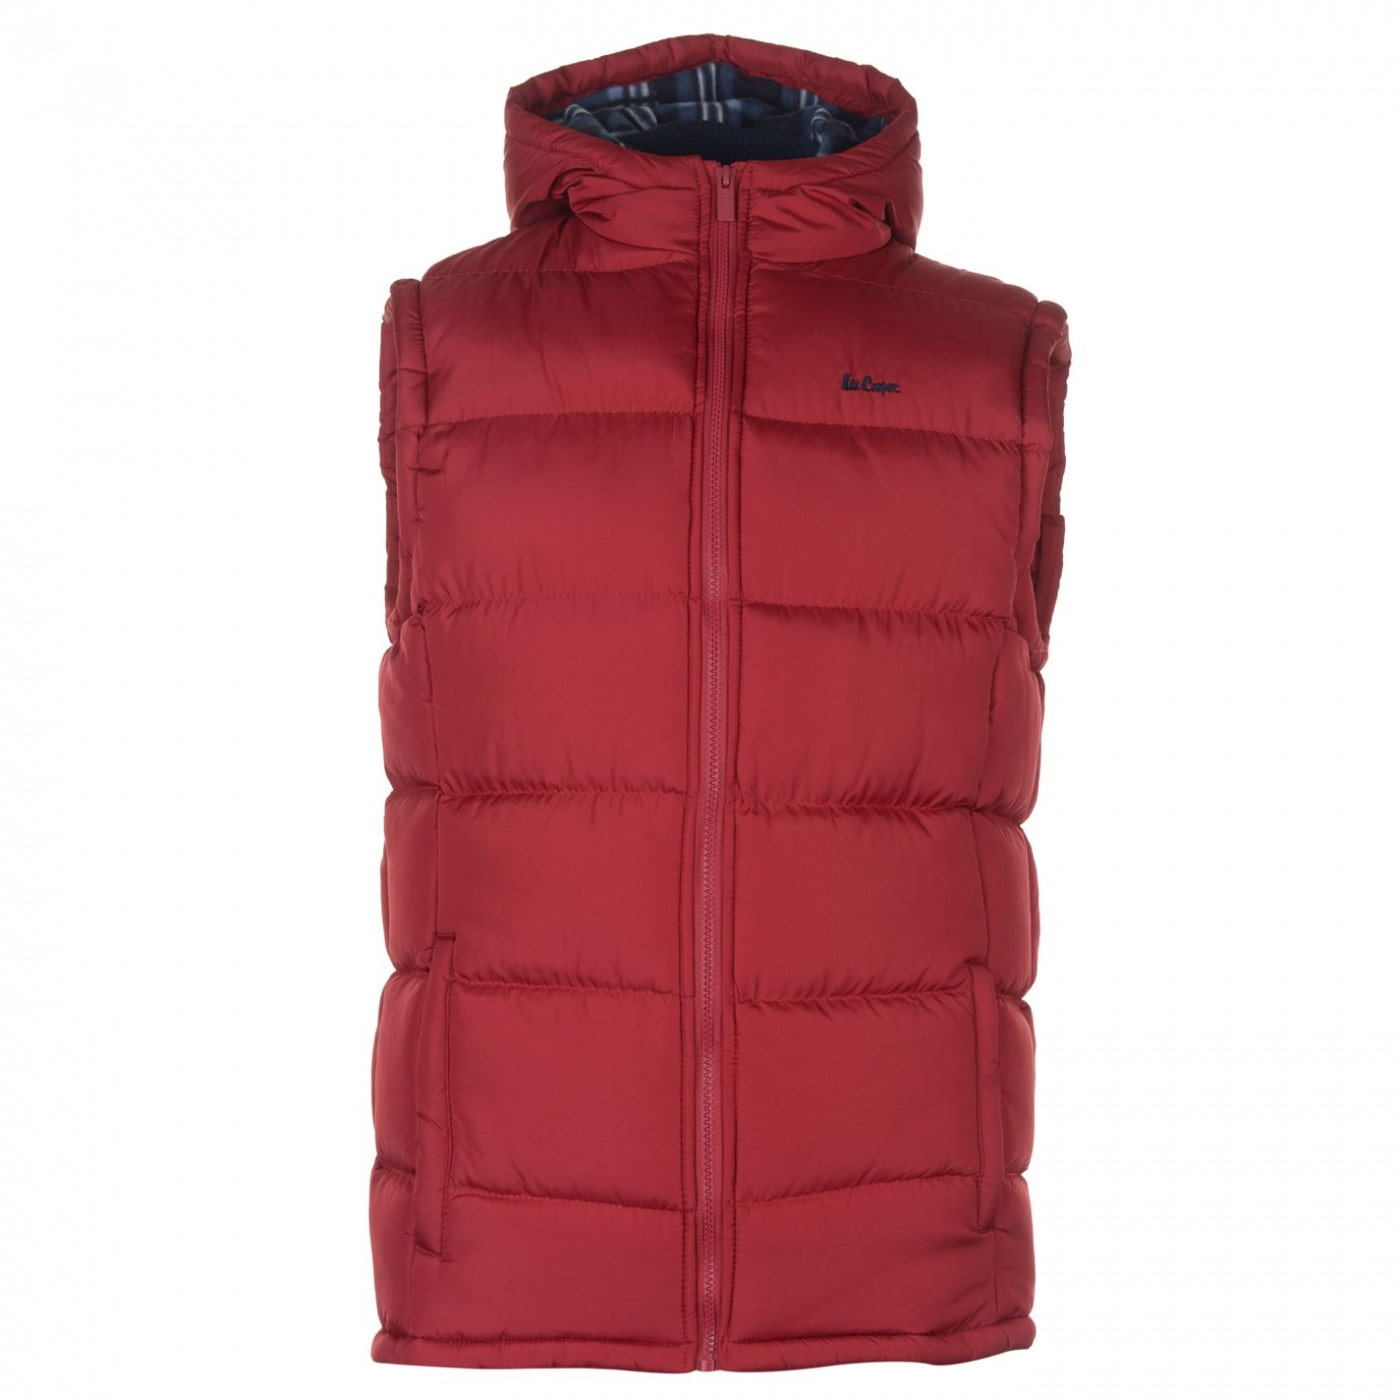 Lee Cooper 2 Zip Gilet Mens